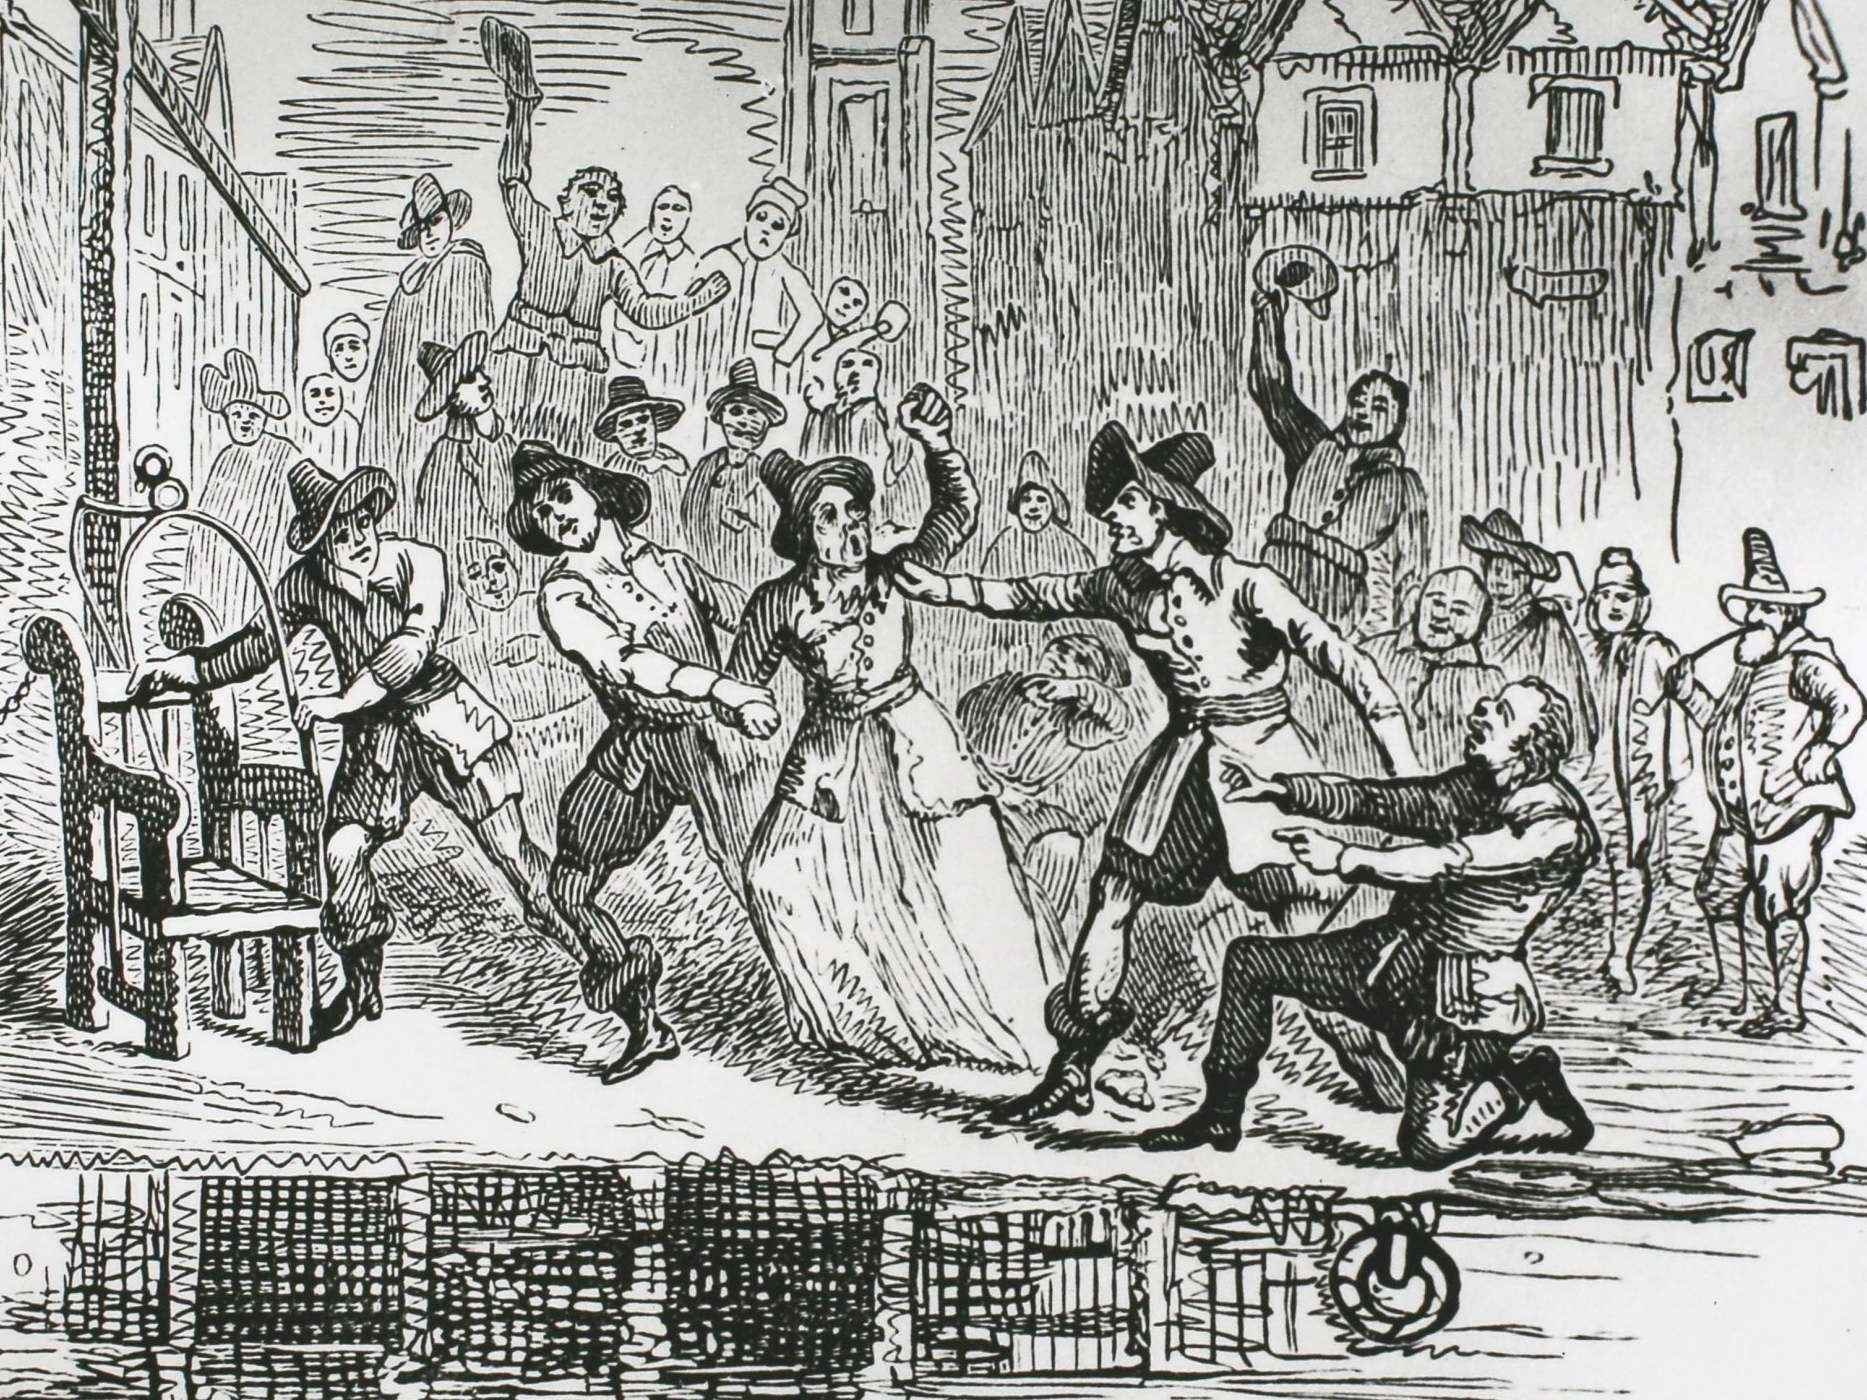 Why a book about witch trials feels weirdly relevant today